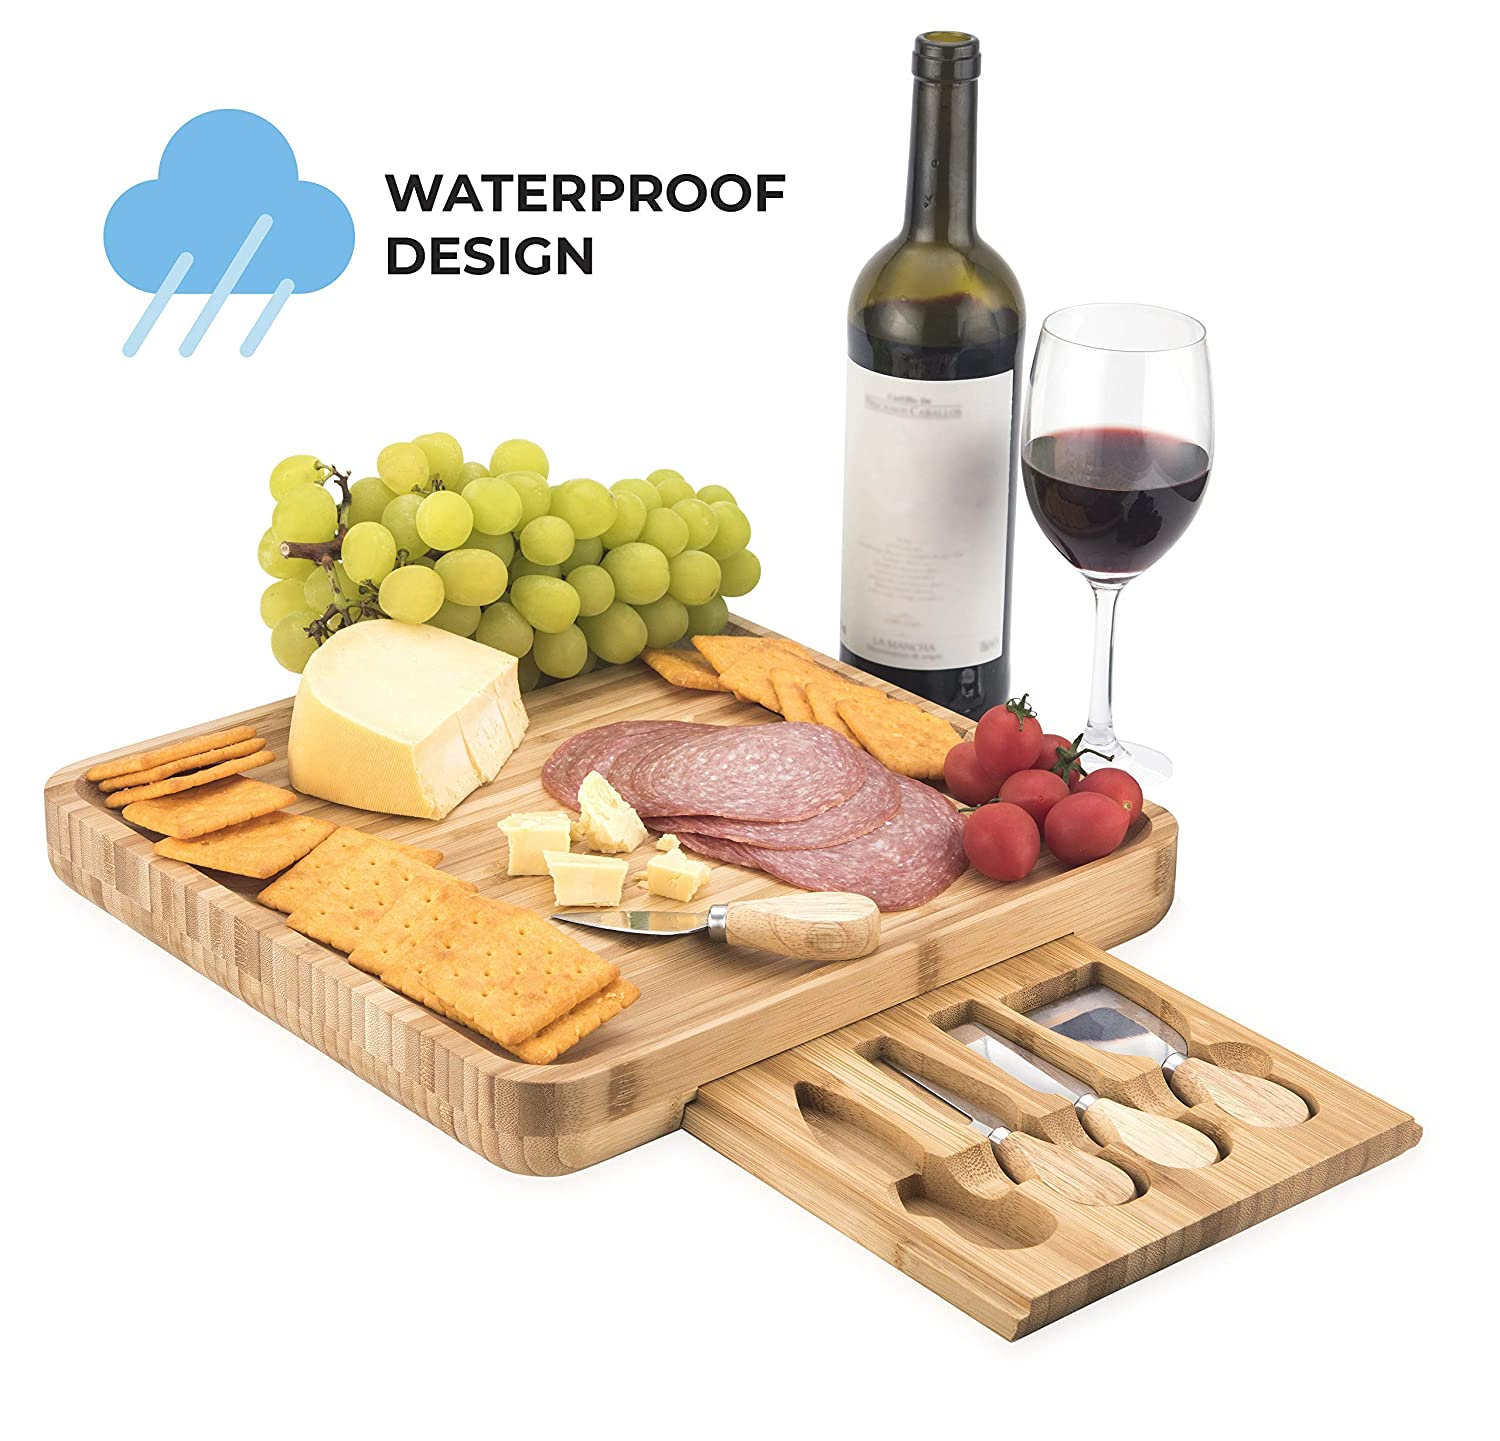 Bamboo Cheese Board with Cutlery Set I WATERPROOF DESIGN I Charcuterie Board | Cheese Platter | Cheese Plate | Cheese Tray | 4 Stainless Steel Knifes and Serving Sets Ningbo Bright Commodity Co. Ltd.